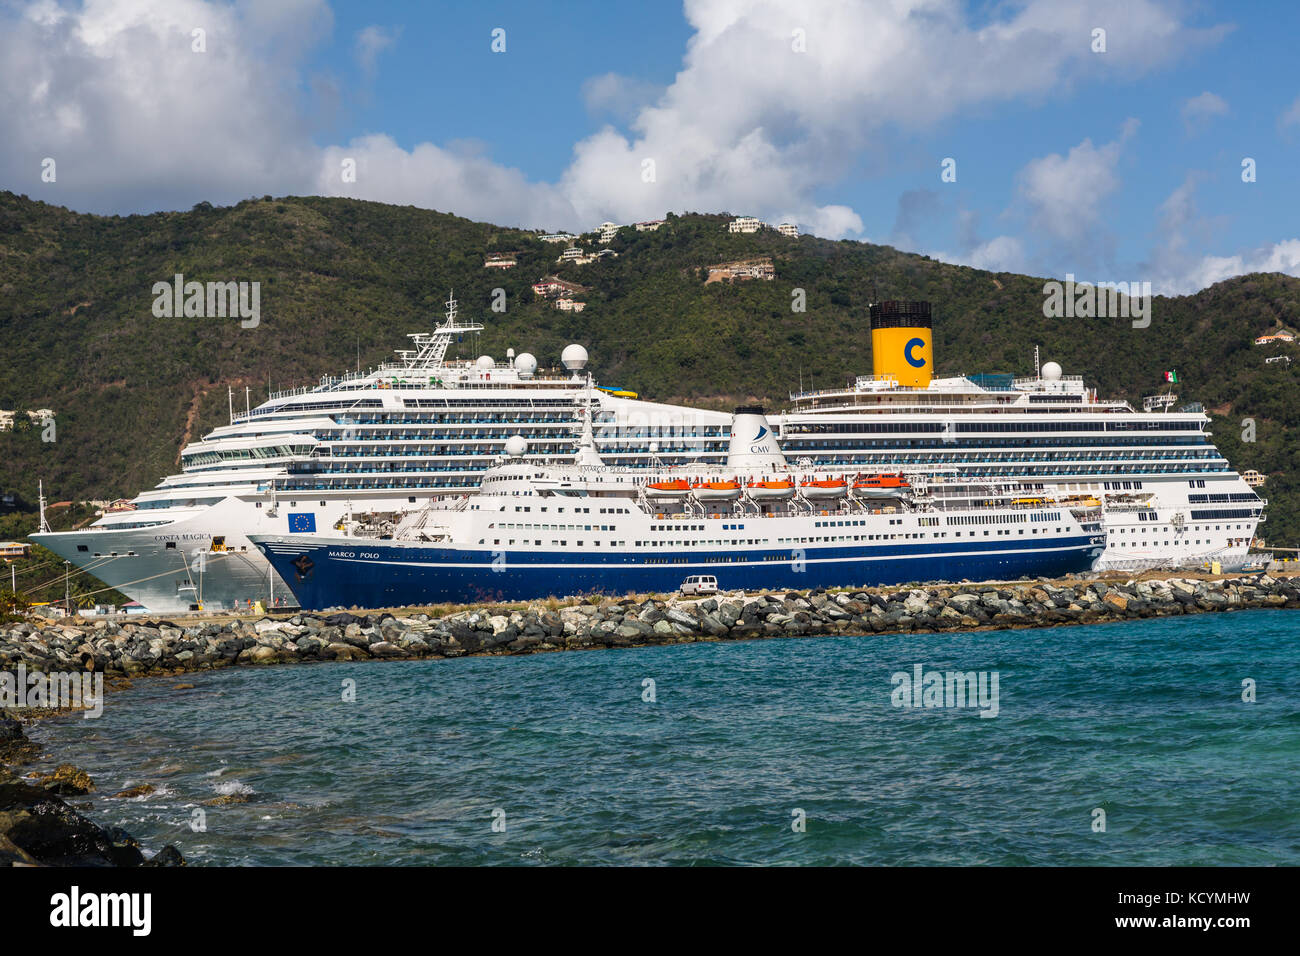 Marco Polo and Costa Magica docked in Road Town, Tortola, British Virgin Islands - Stock Image